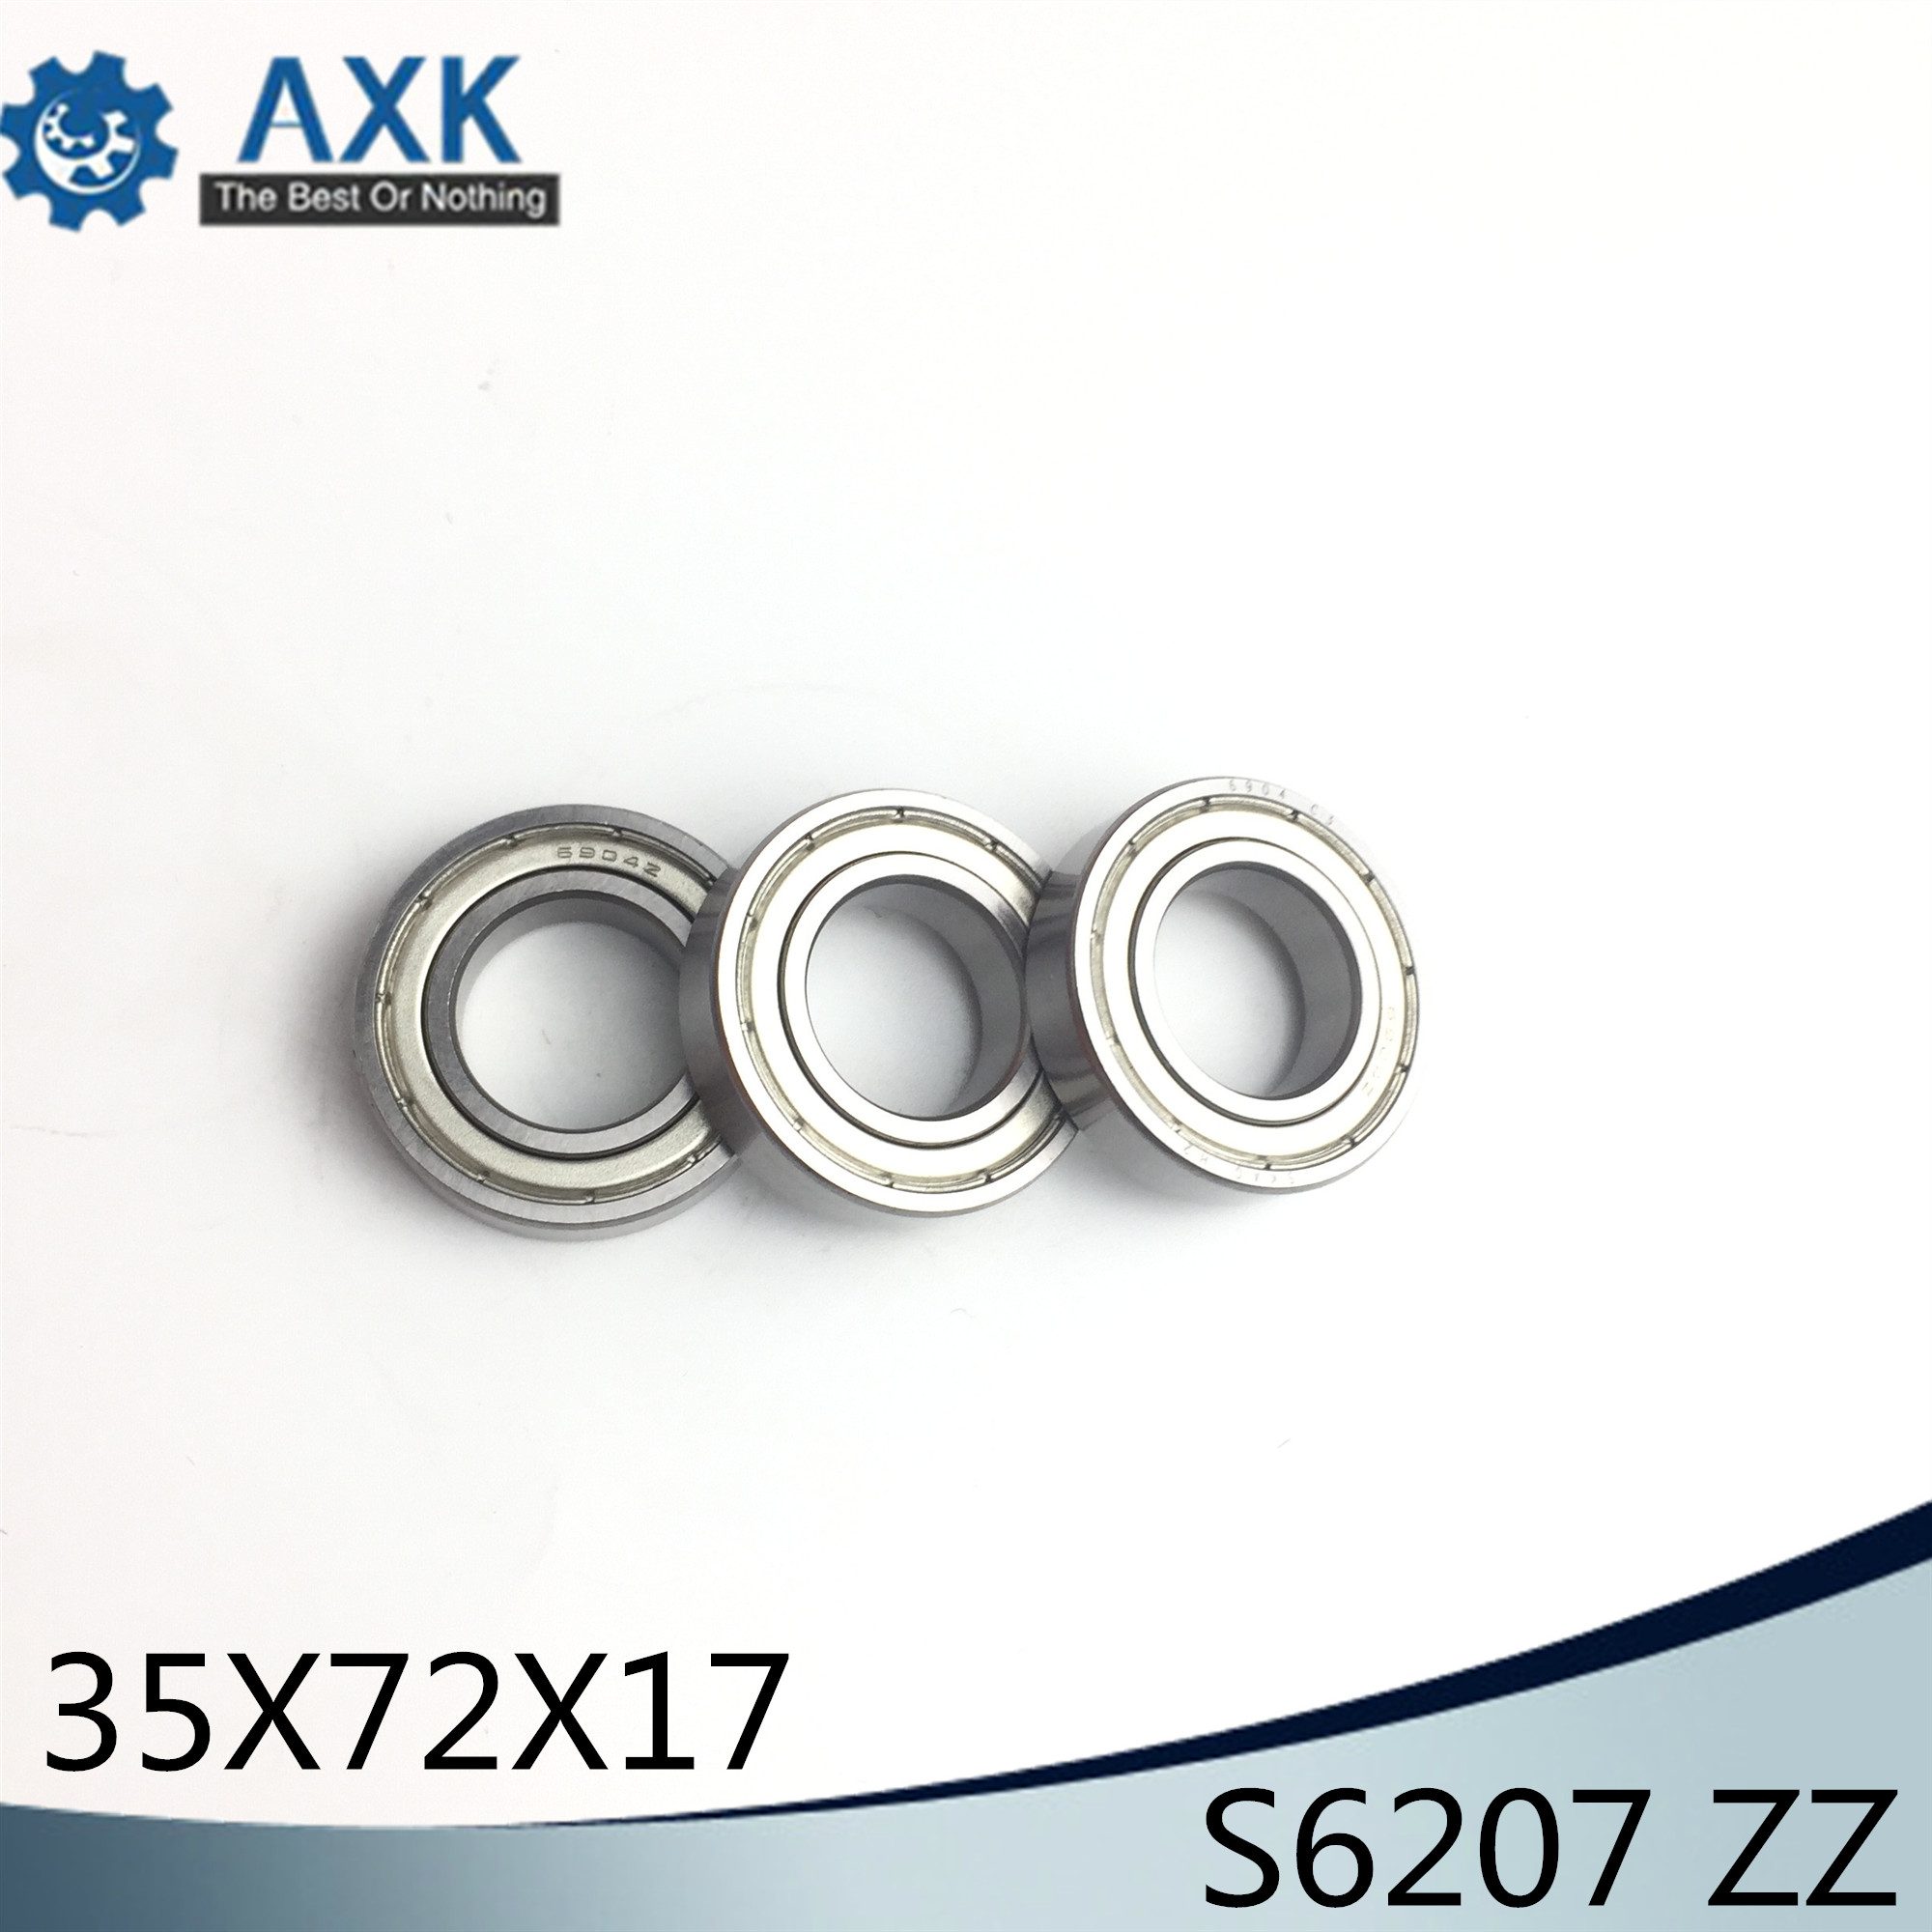 S6207ZZ Bearing 35*72*17 mm ( 2PCS ) ABEC-1 S6207 Z ZZ S 6207 440C Stainless Steel S6207Z Ball BearingsS6207ZZ Bearing 35*72*17 mm ( 2PCS ) ABEC-1 S6207 Z ZZ S 6207 440C Stainless Steel S6207Z Ball Bearings